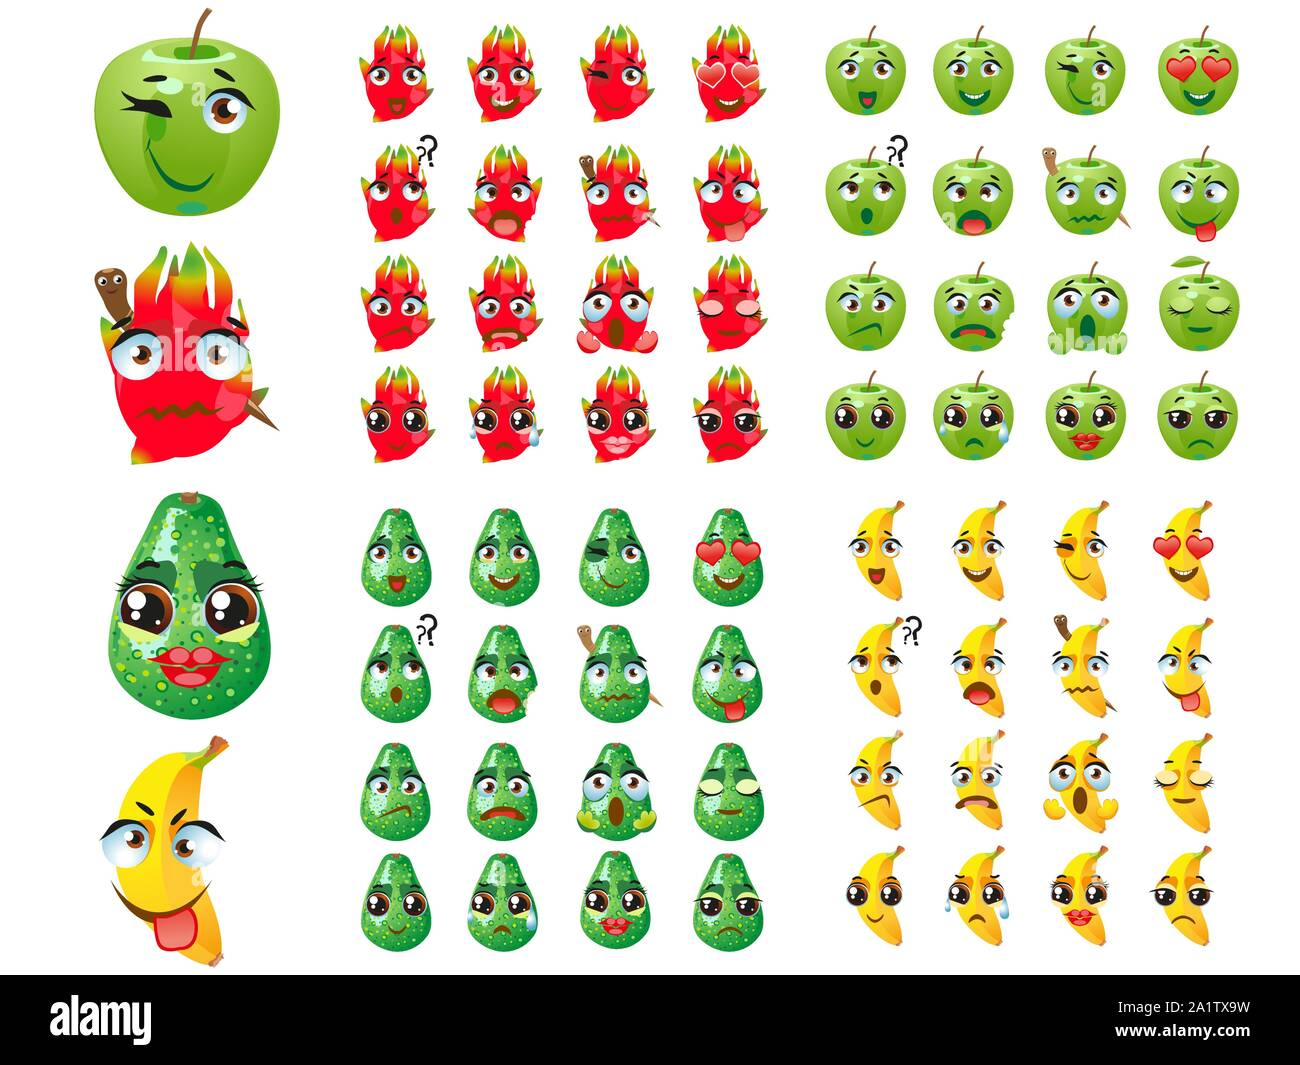 Ensemble De Fruits Expression D Emoticones Emoji Pitaya Banane Pomme Poire Image Vectorielle Stock Alamy